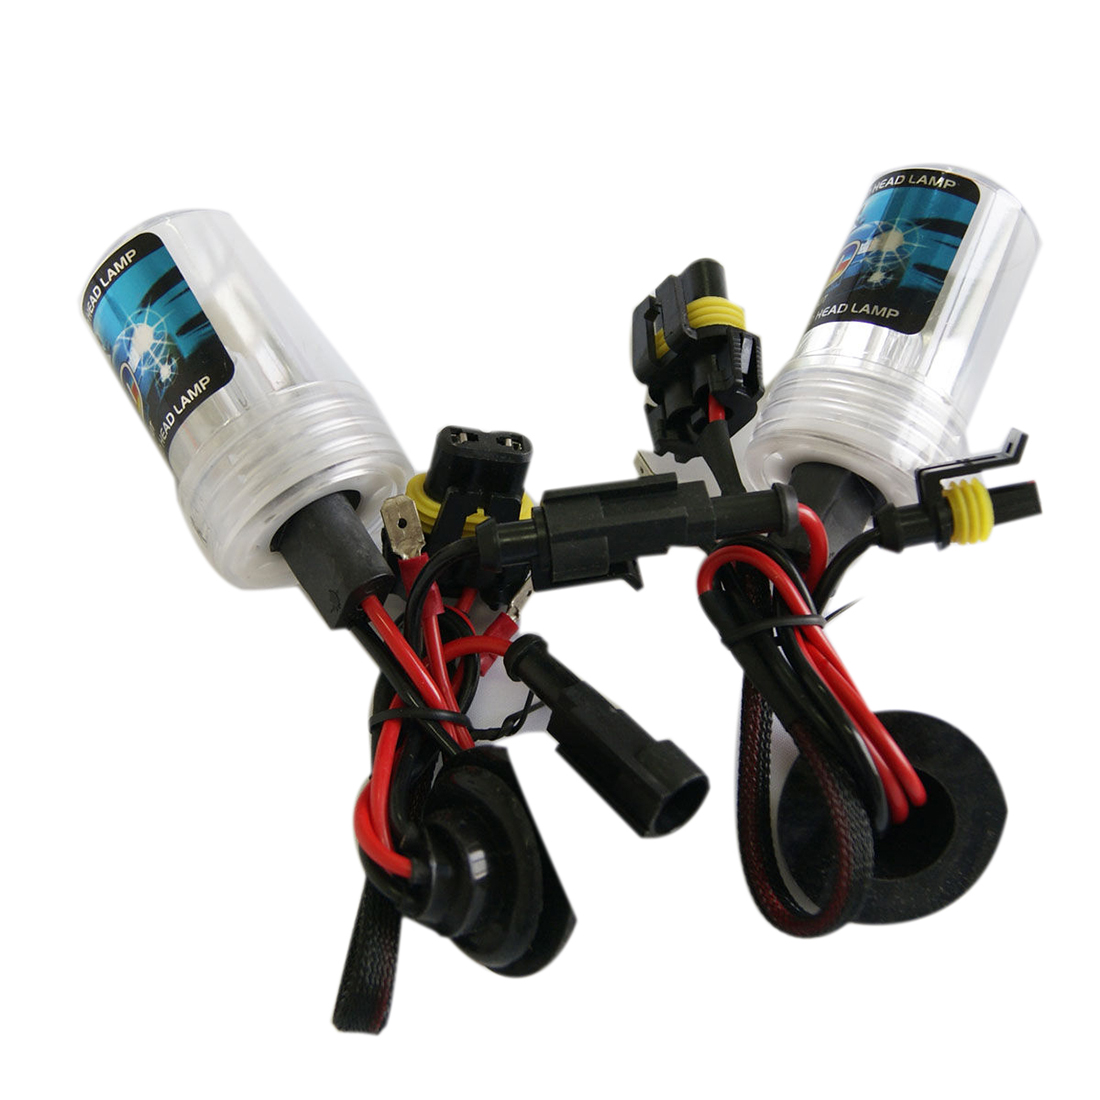 Tonewan Double Light 12v 55W H7 Xenon KIT LED Fog Tail Turn DRL Head - Luces del coche - foto 2